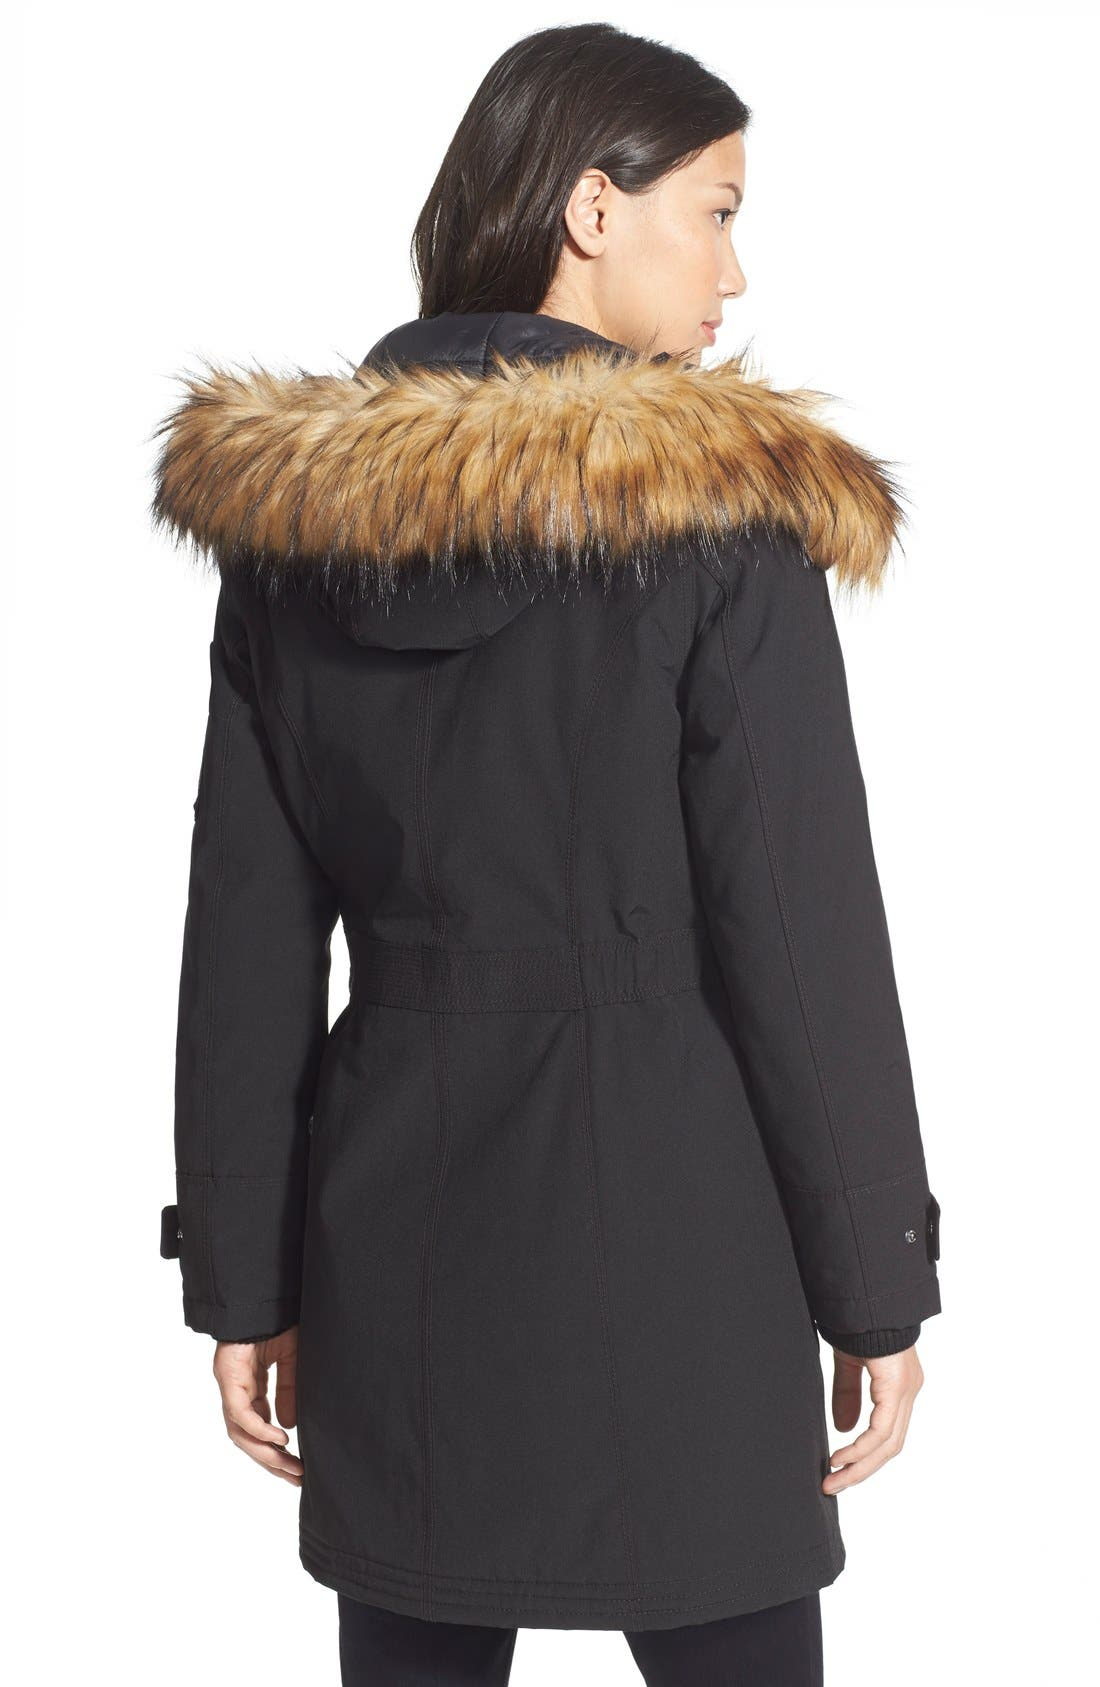 'Expedition' Faux Fur Trim Parka,                             Alternate thumbnail 3, color,                             001